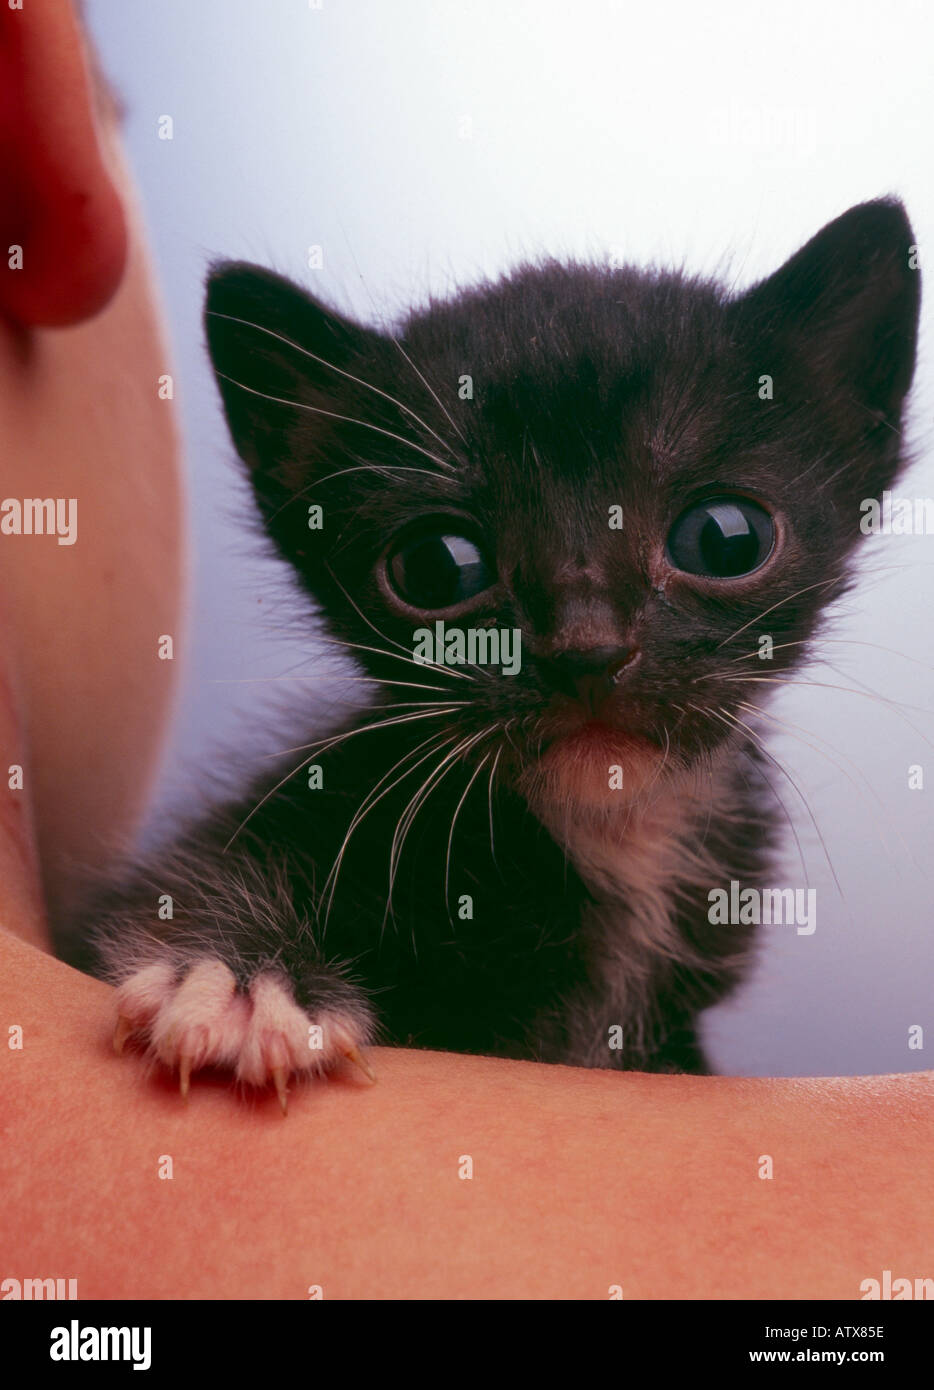 Little kitten on boy's shoulder looking at camera - Stock Image